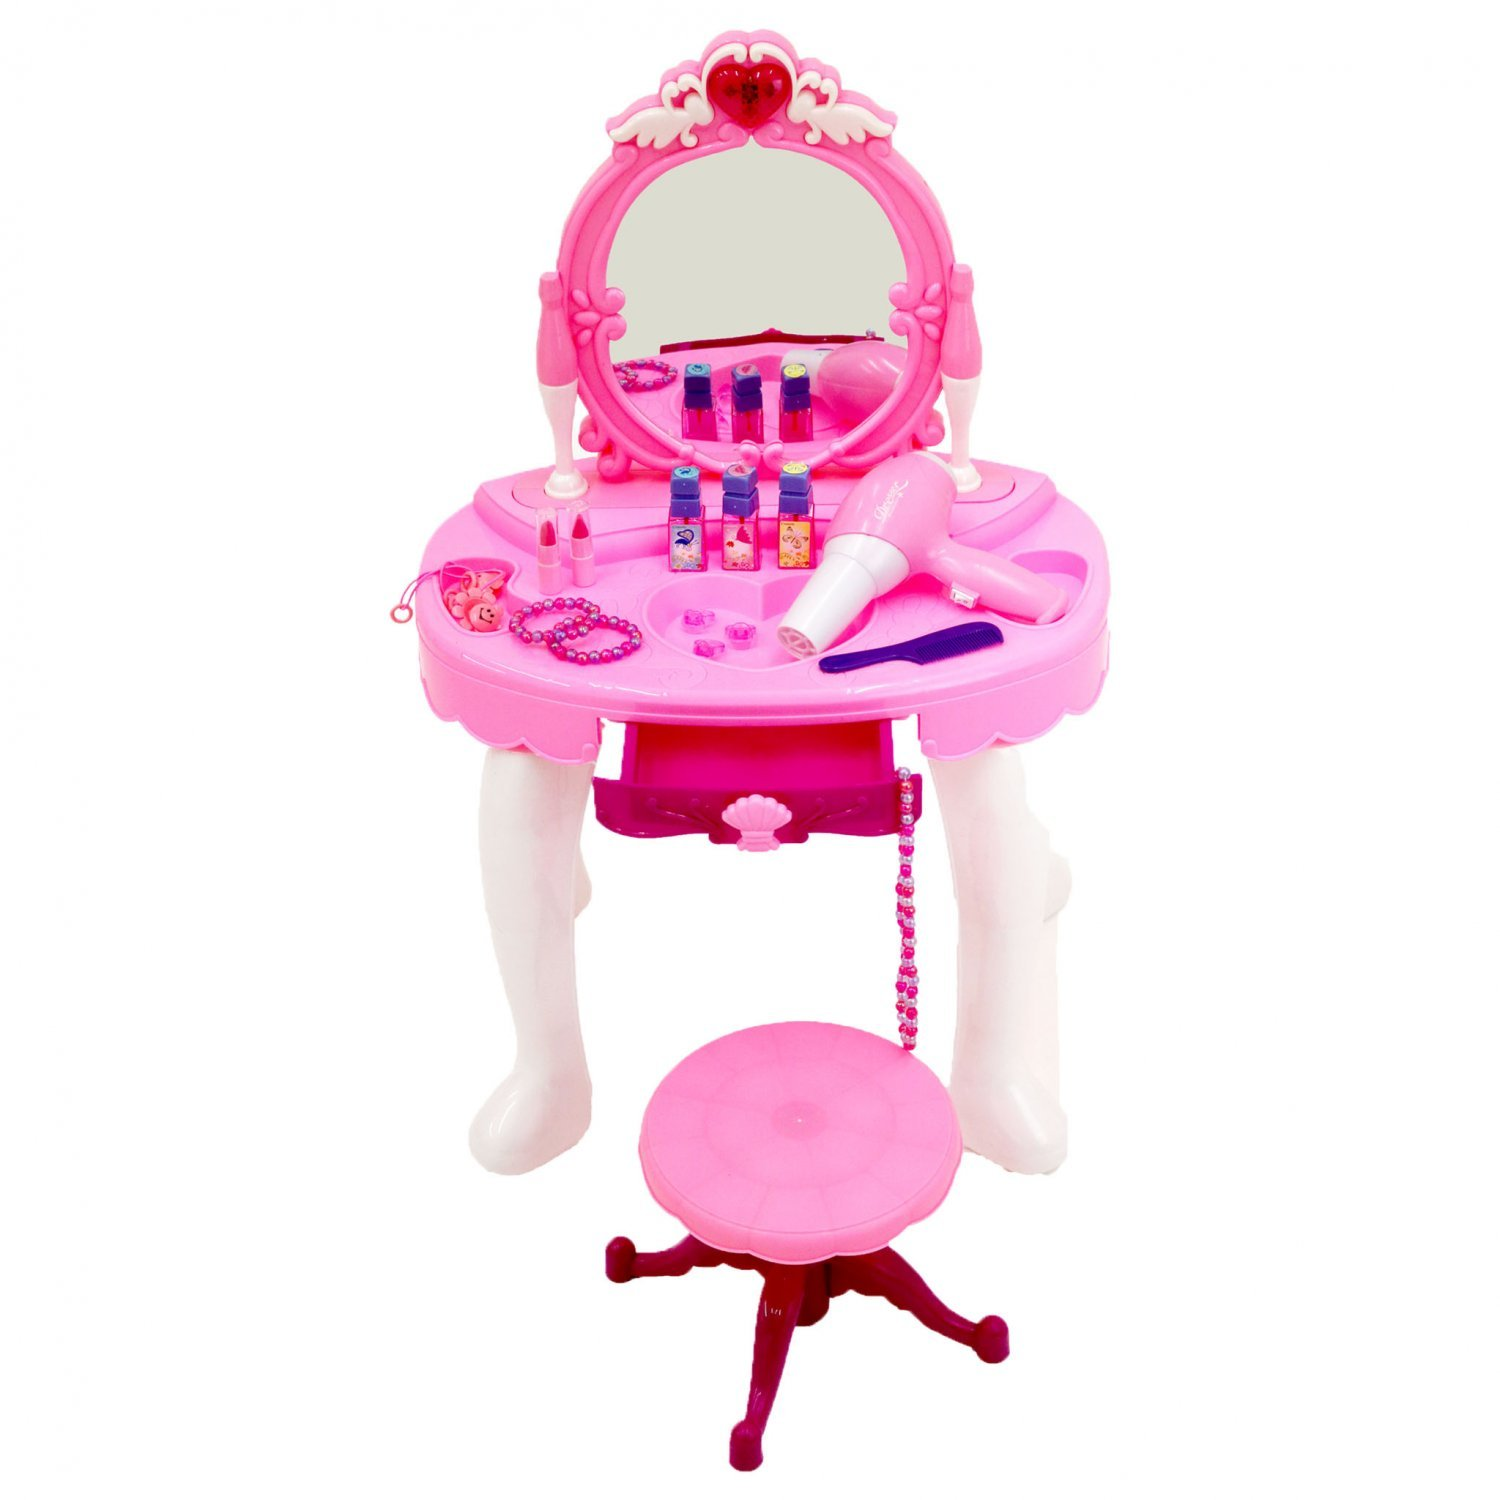 Childrens Kids Girls Play Toy Dressing Table Glamour Mirror 163 19 99 Oypla Stocking The Very